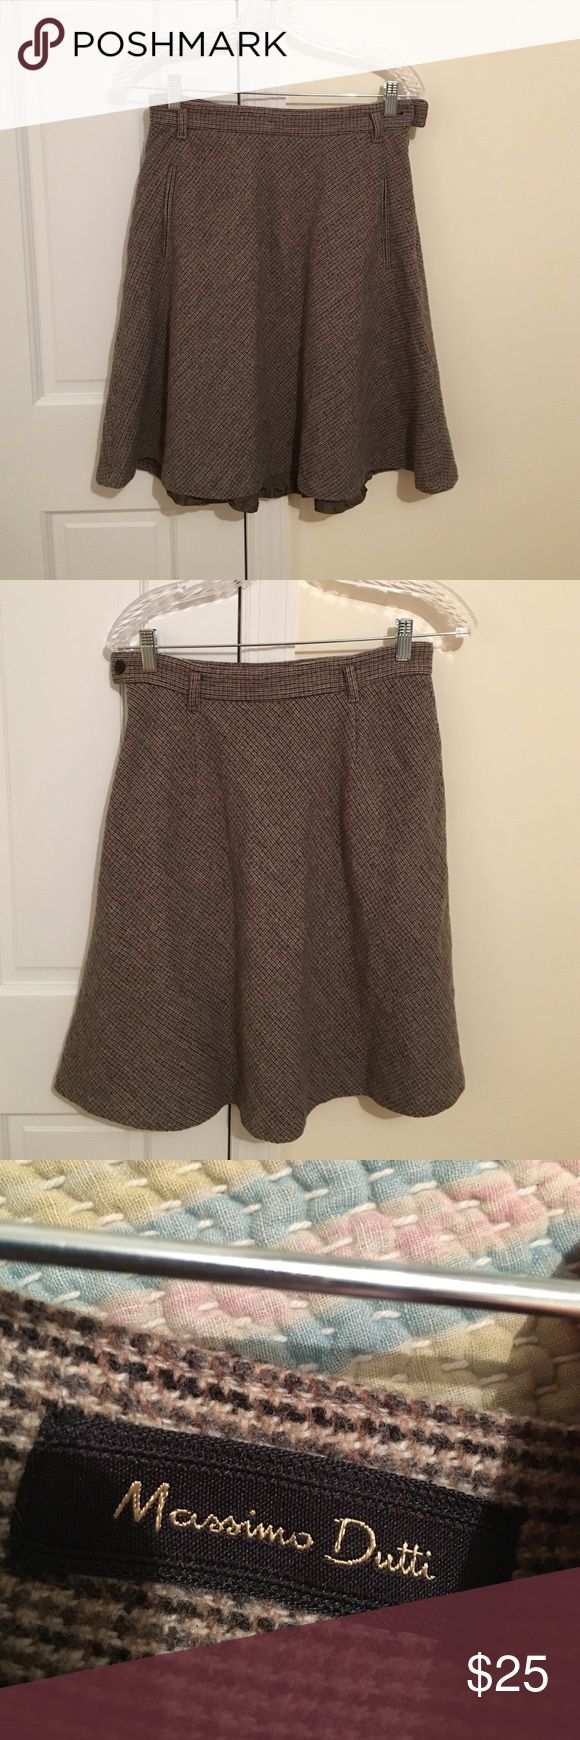 Massimo dutti a line wool skirt Such a cute skirt. Is a little small on me. Fits like a 2-4 Massimo Dutti Skirts Midi